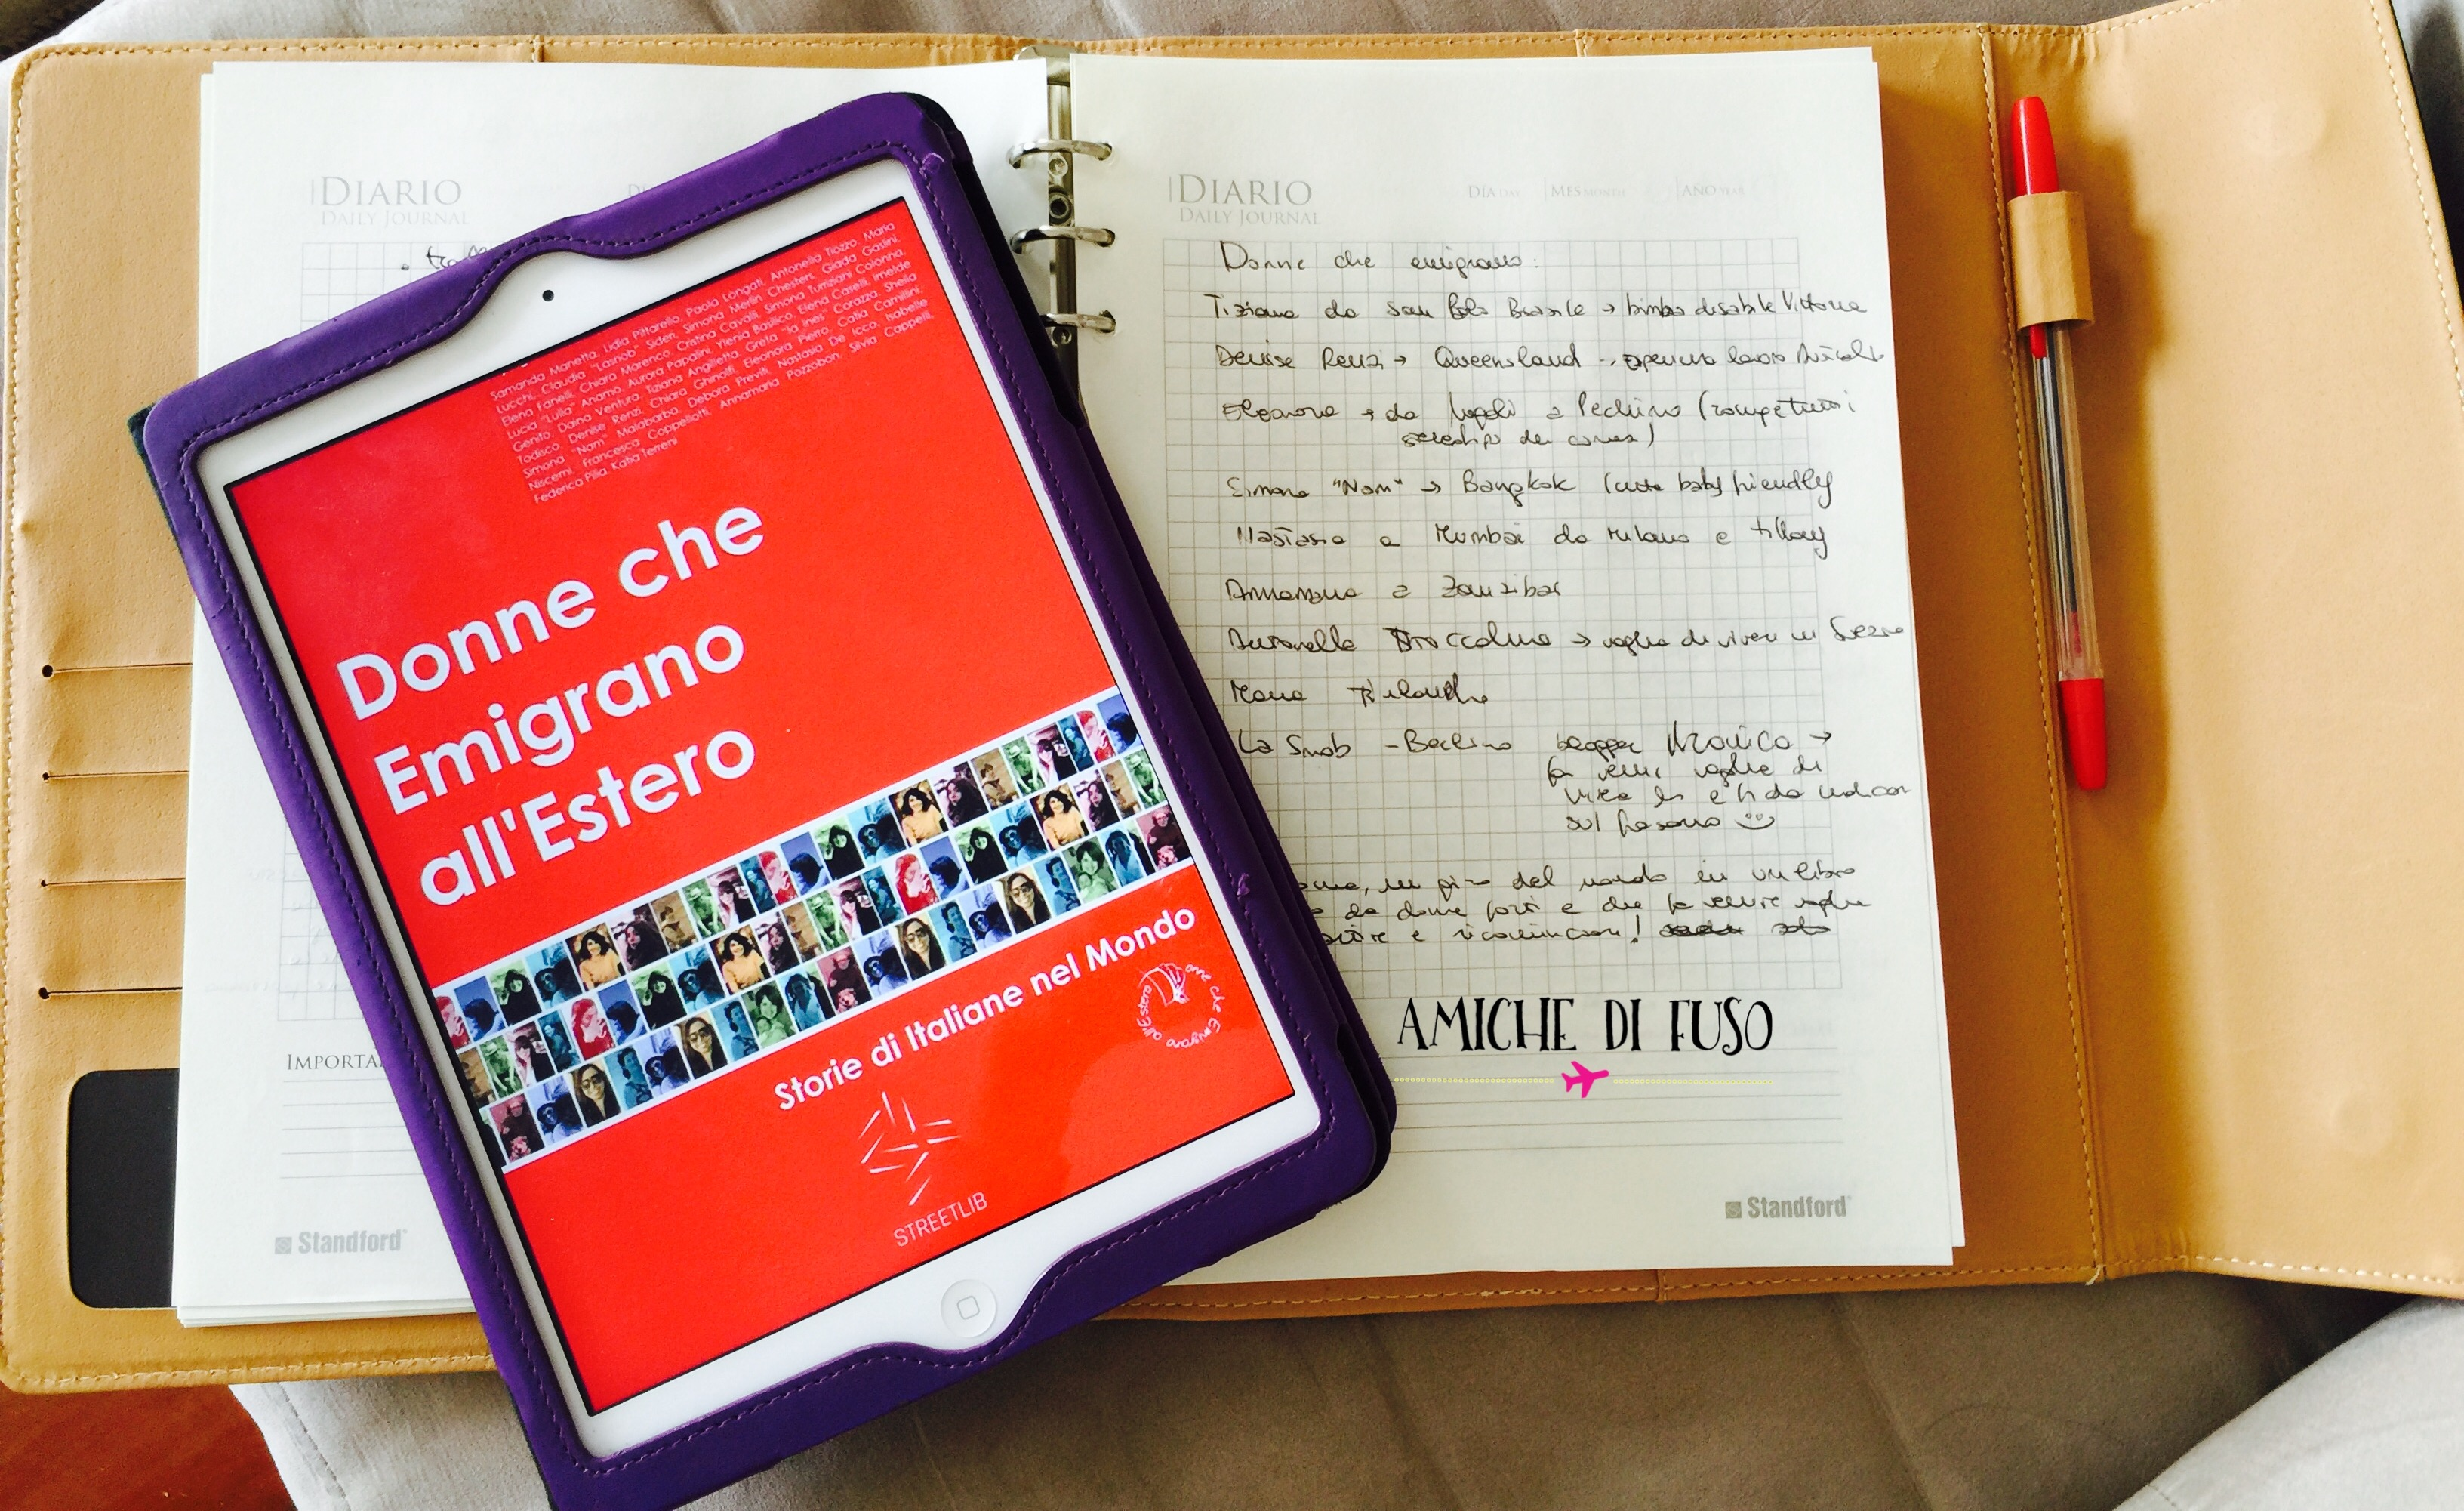 Donne che emigrano all'estero – il libro